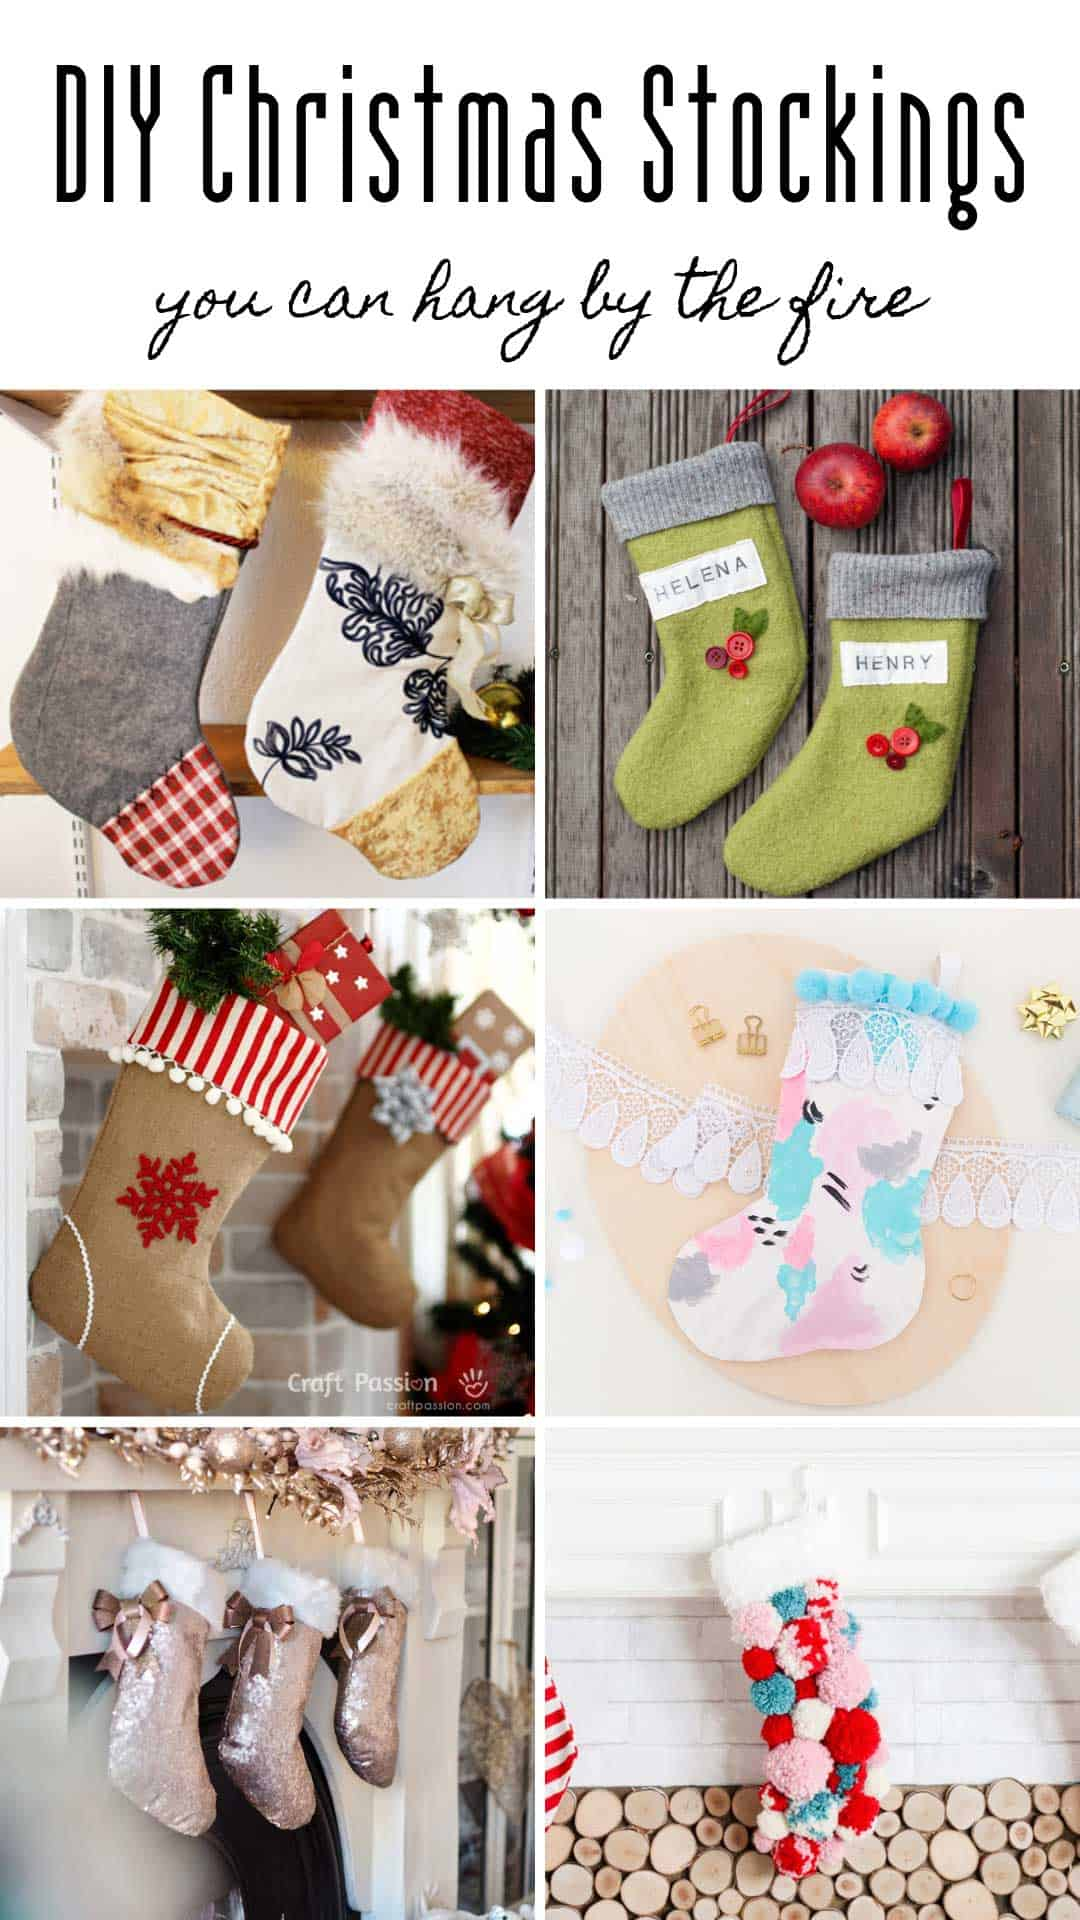 20 DIY Christmas Stockings You Can Hang by the Fire